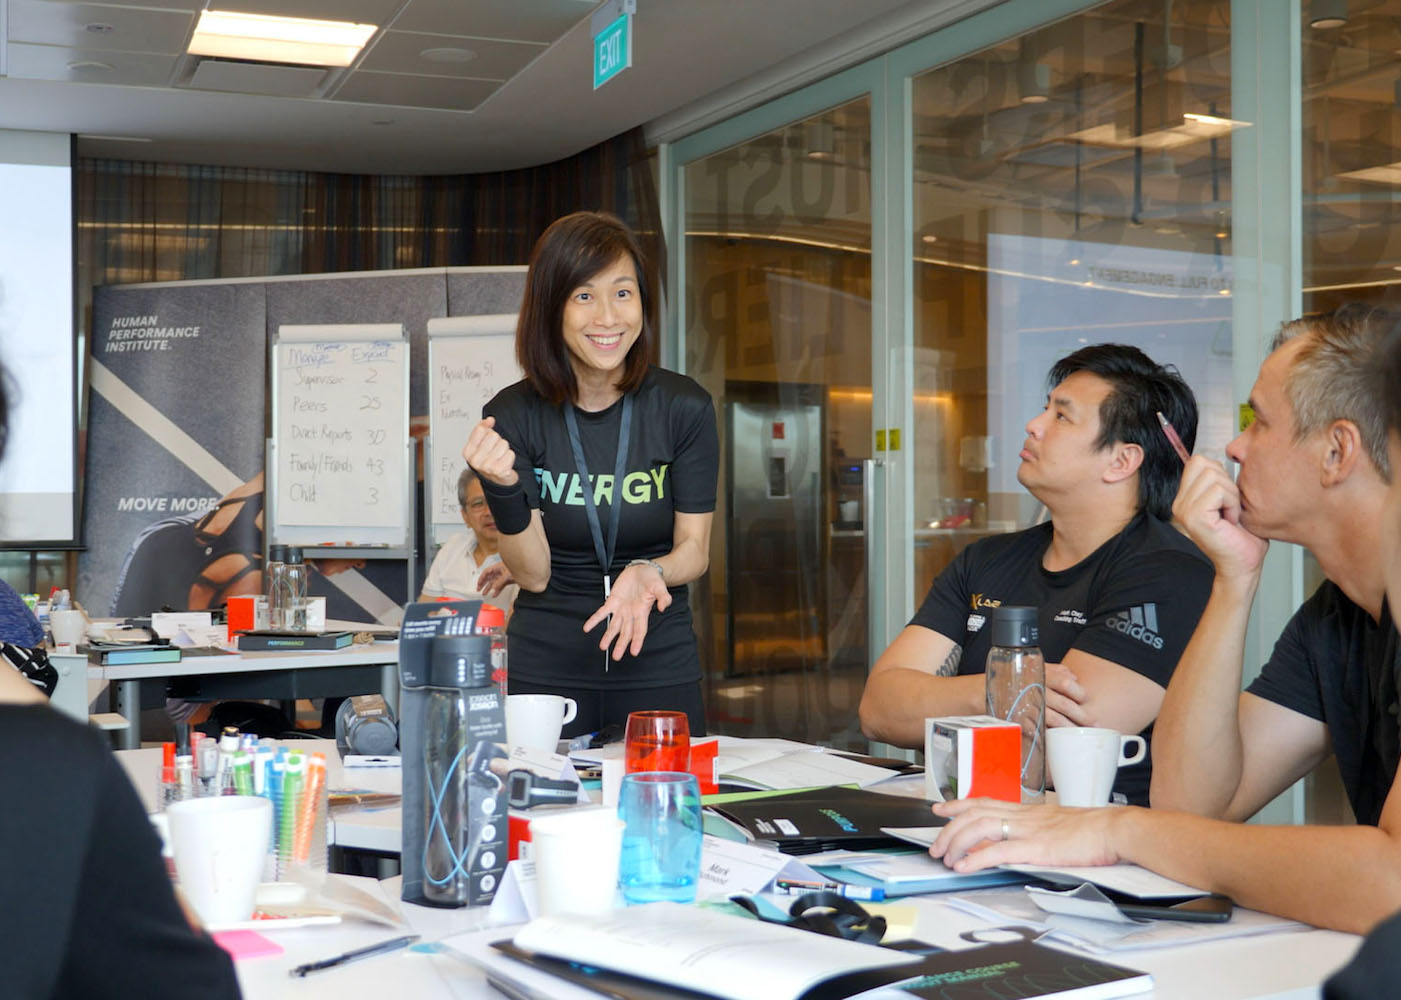 Coach Wai Yee Chan of the Human Performance Instituteencourages course participants to dig deeper and identify their purpose.